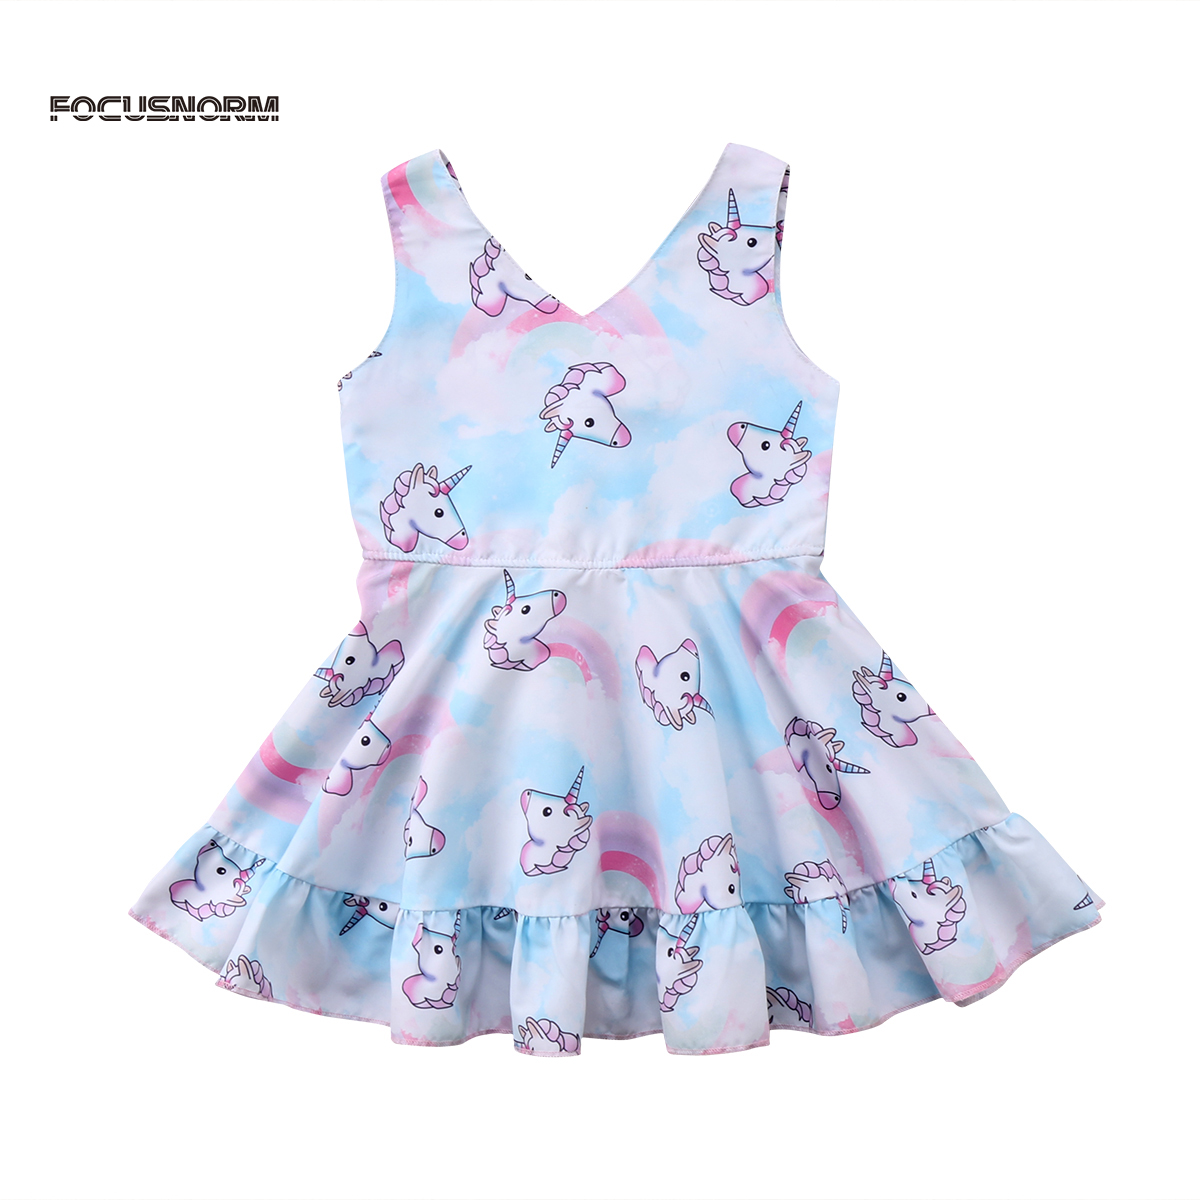 adorable unicorn dresses 2018 new toddler kids baby girls